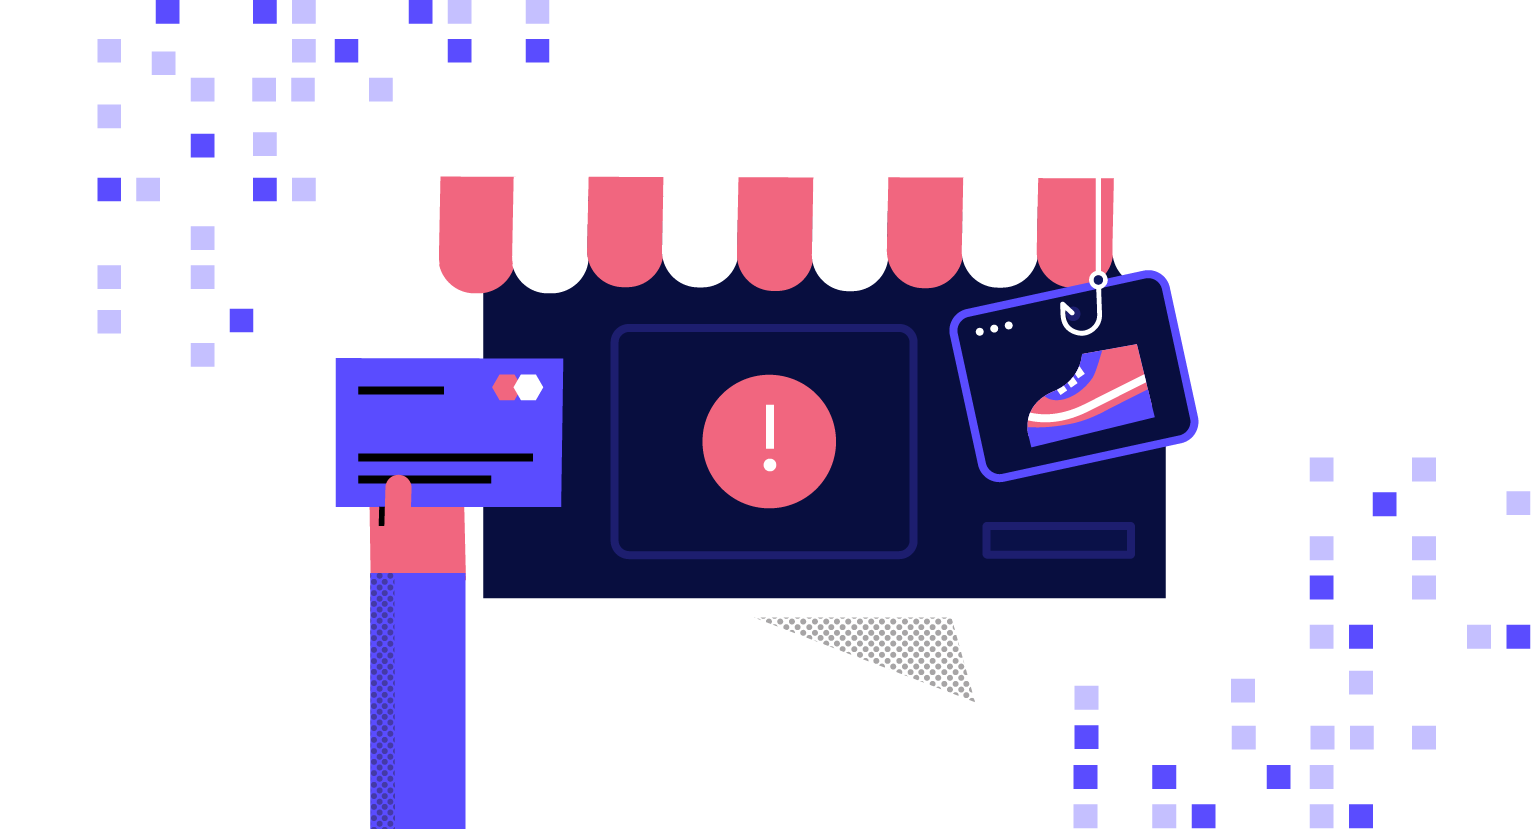 Primed for Prime Day: The Dual Fraud Headache of Online Marketplaces